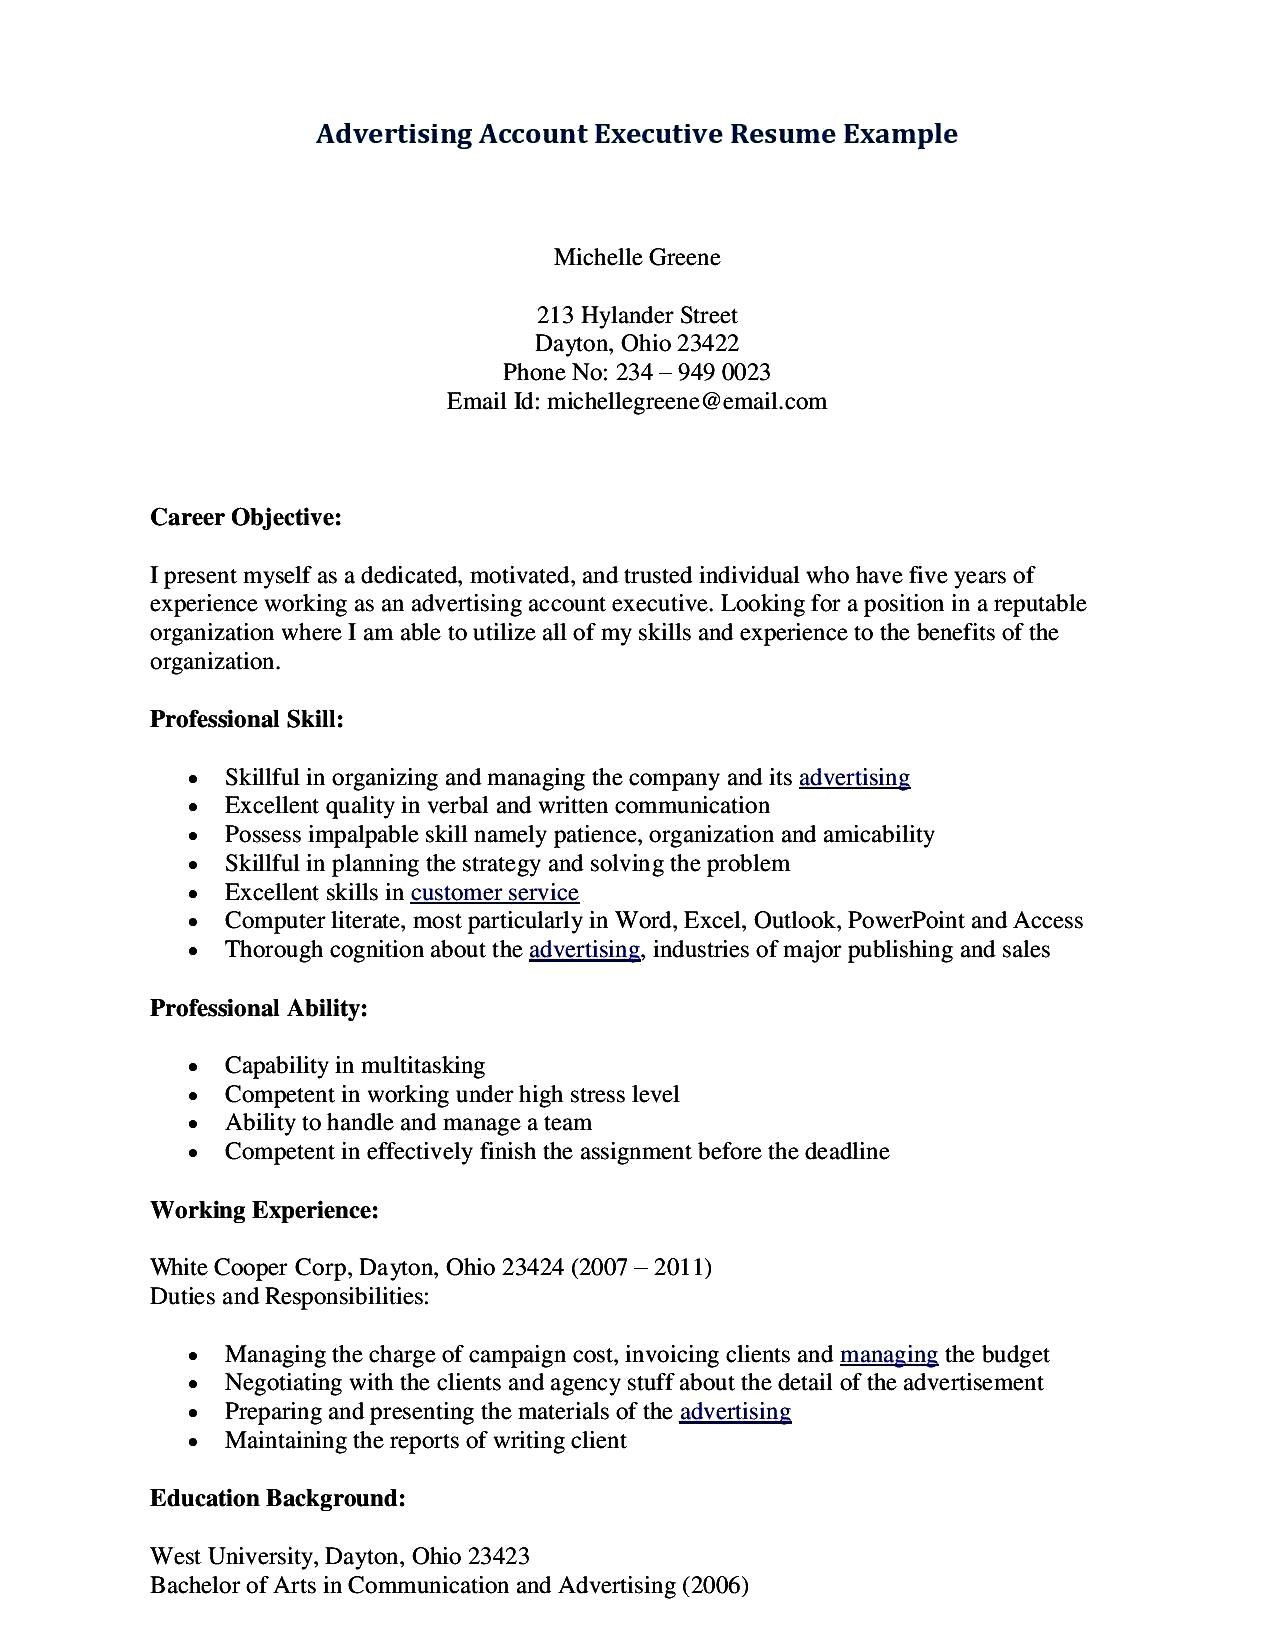 Resume Format For Accounts Manager Account Executive Resume Format Free Samples Examples